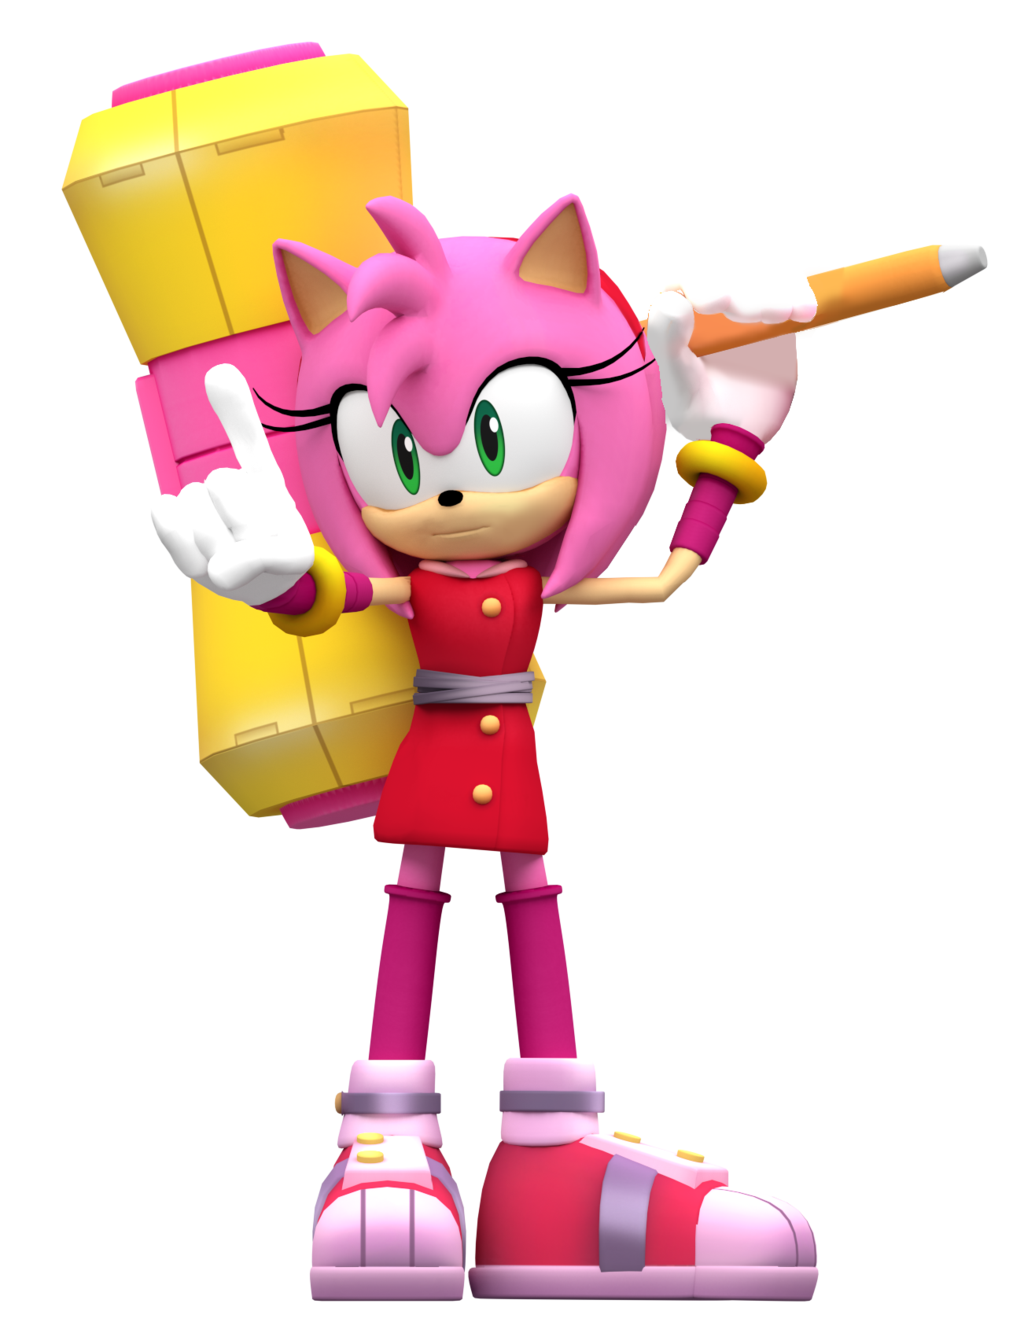 Sonic Boom Amy Render By Nibrocrock On Deviantart Sonic Boom Amy Amy The Hedgehog Sonic Boom